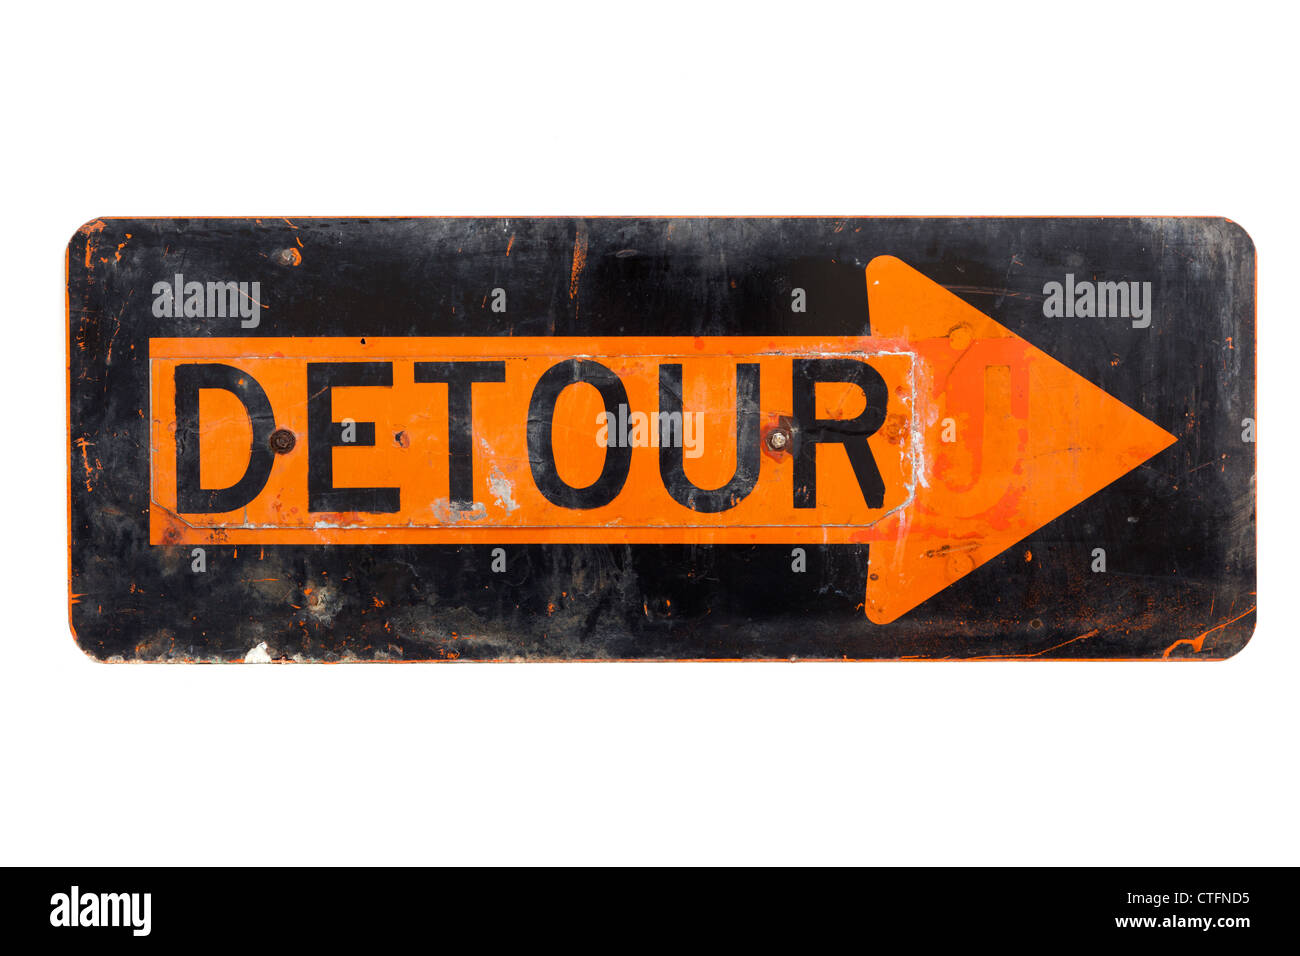 A very old, orange and black detour sign on a white background - Stock Image